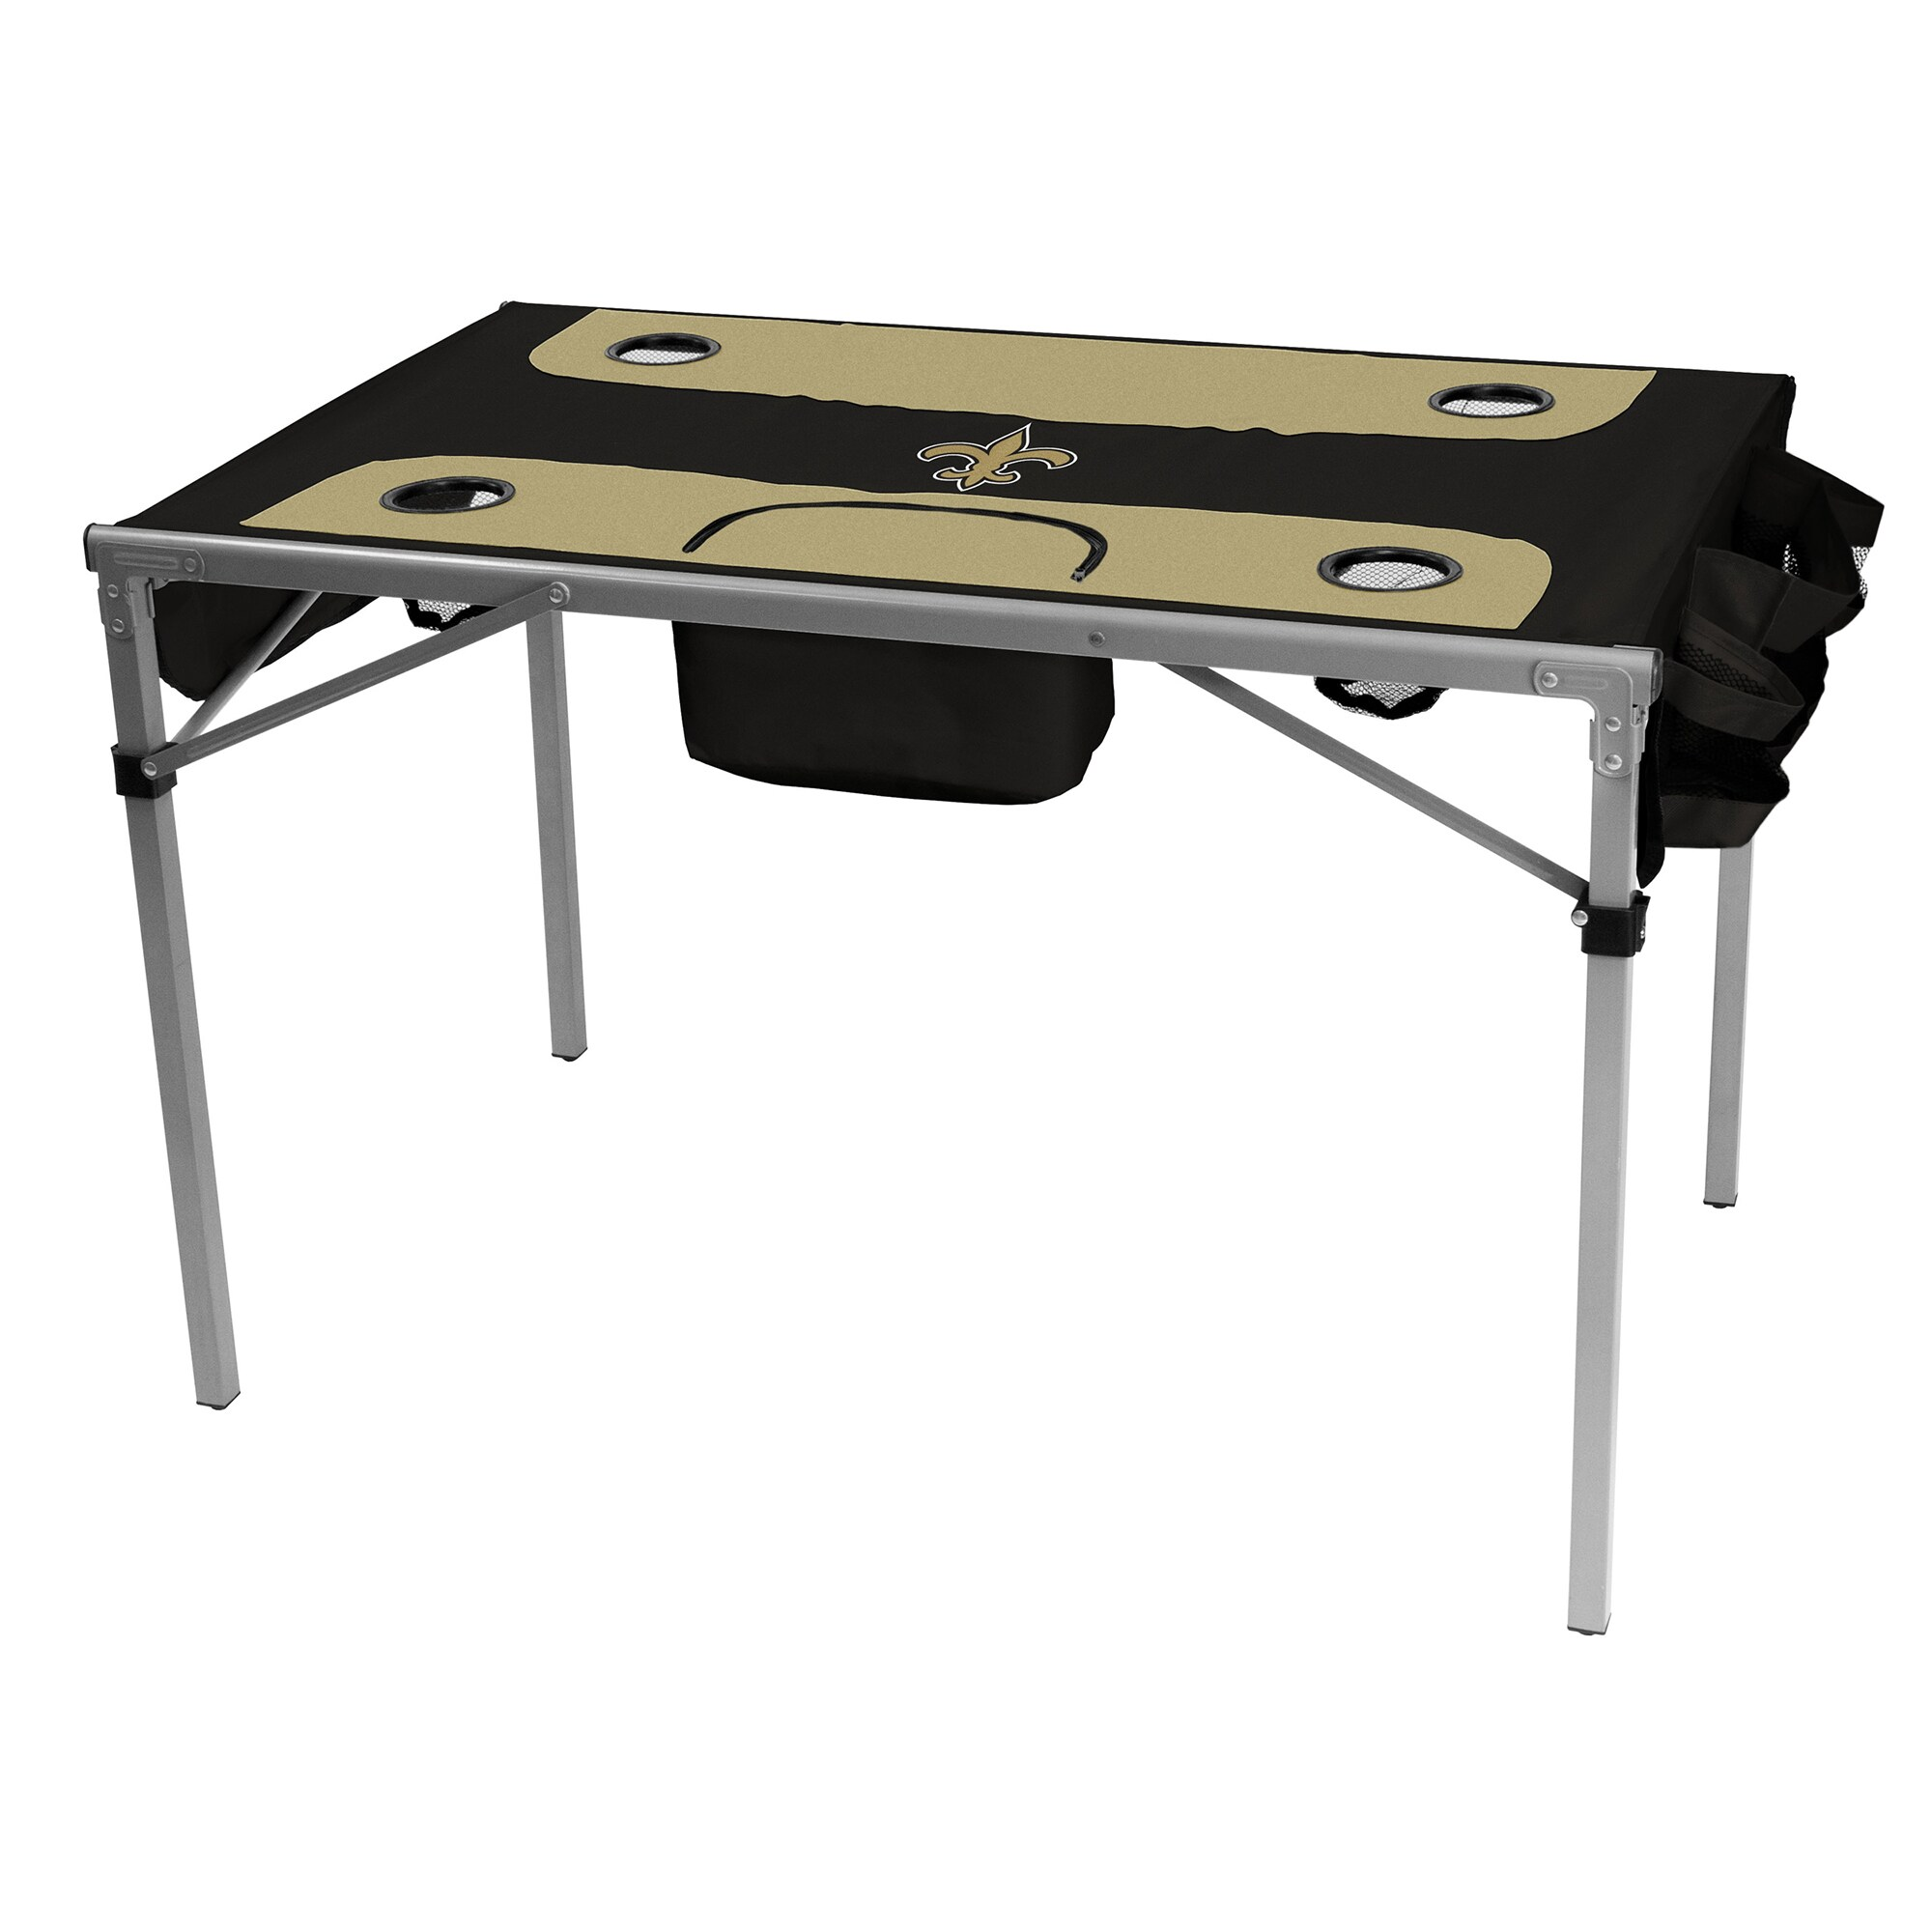 "New Orleans Saints 42"" x 27"" x 28"" Total Tailgate Table"